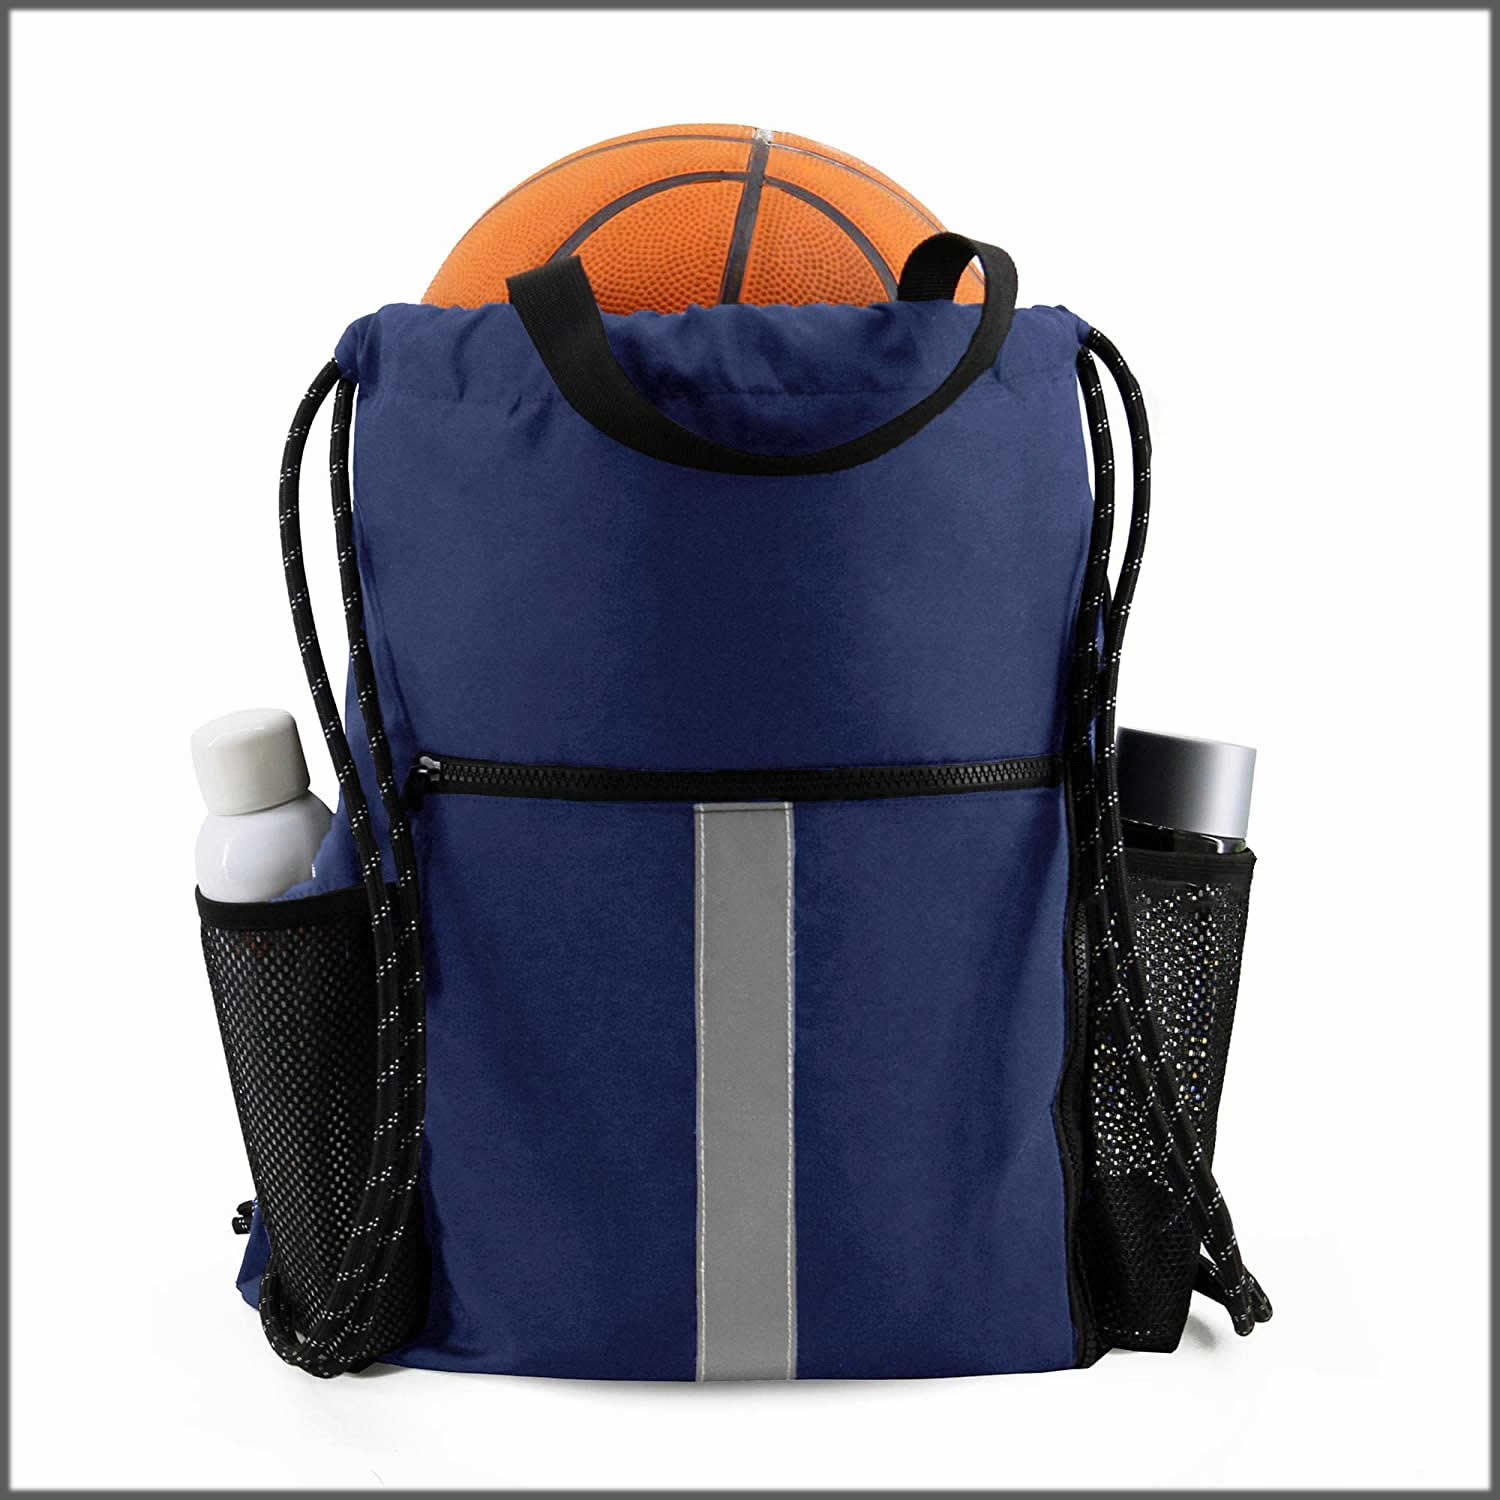 Two water bottle backpack